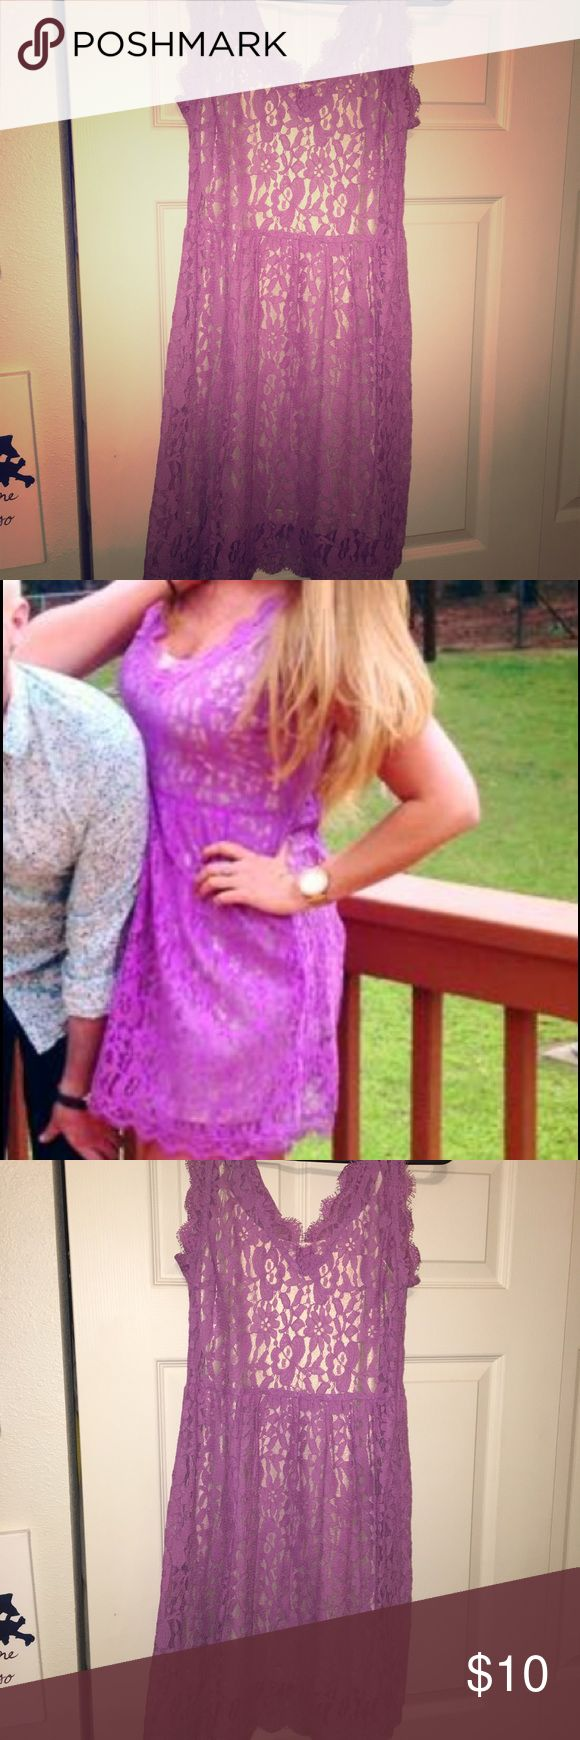 Purple lace dress with a gold underlay Lavender lace dress with a gold lining. Worn once Dresses Midi